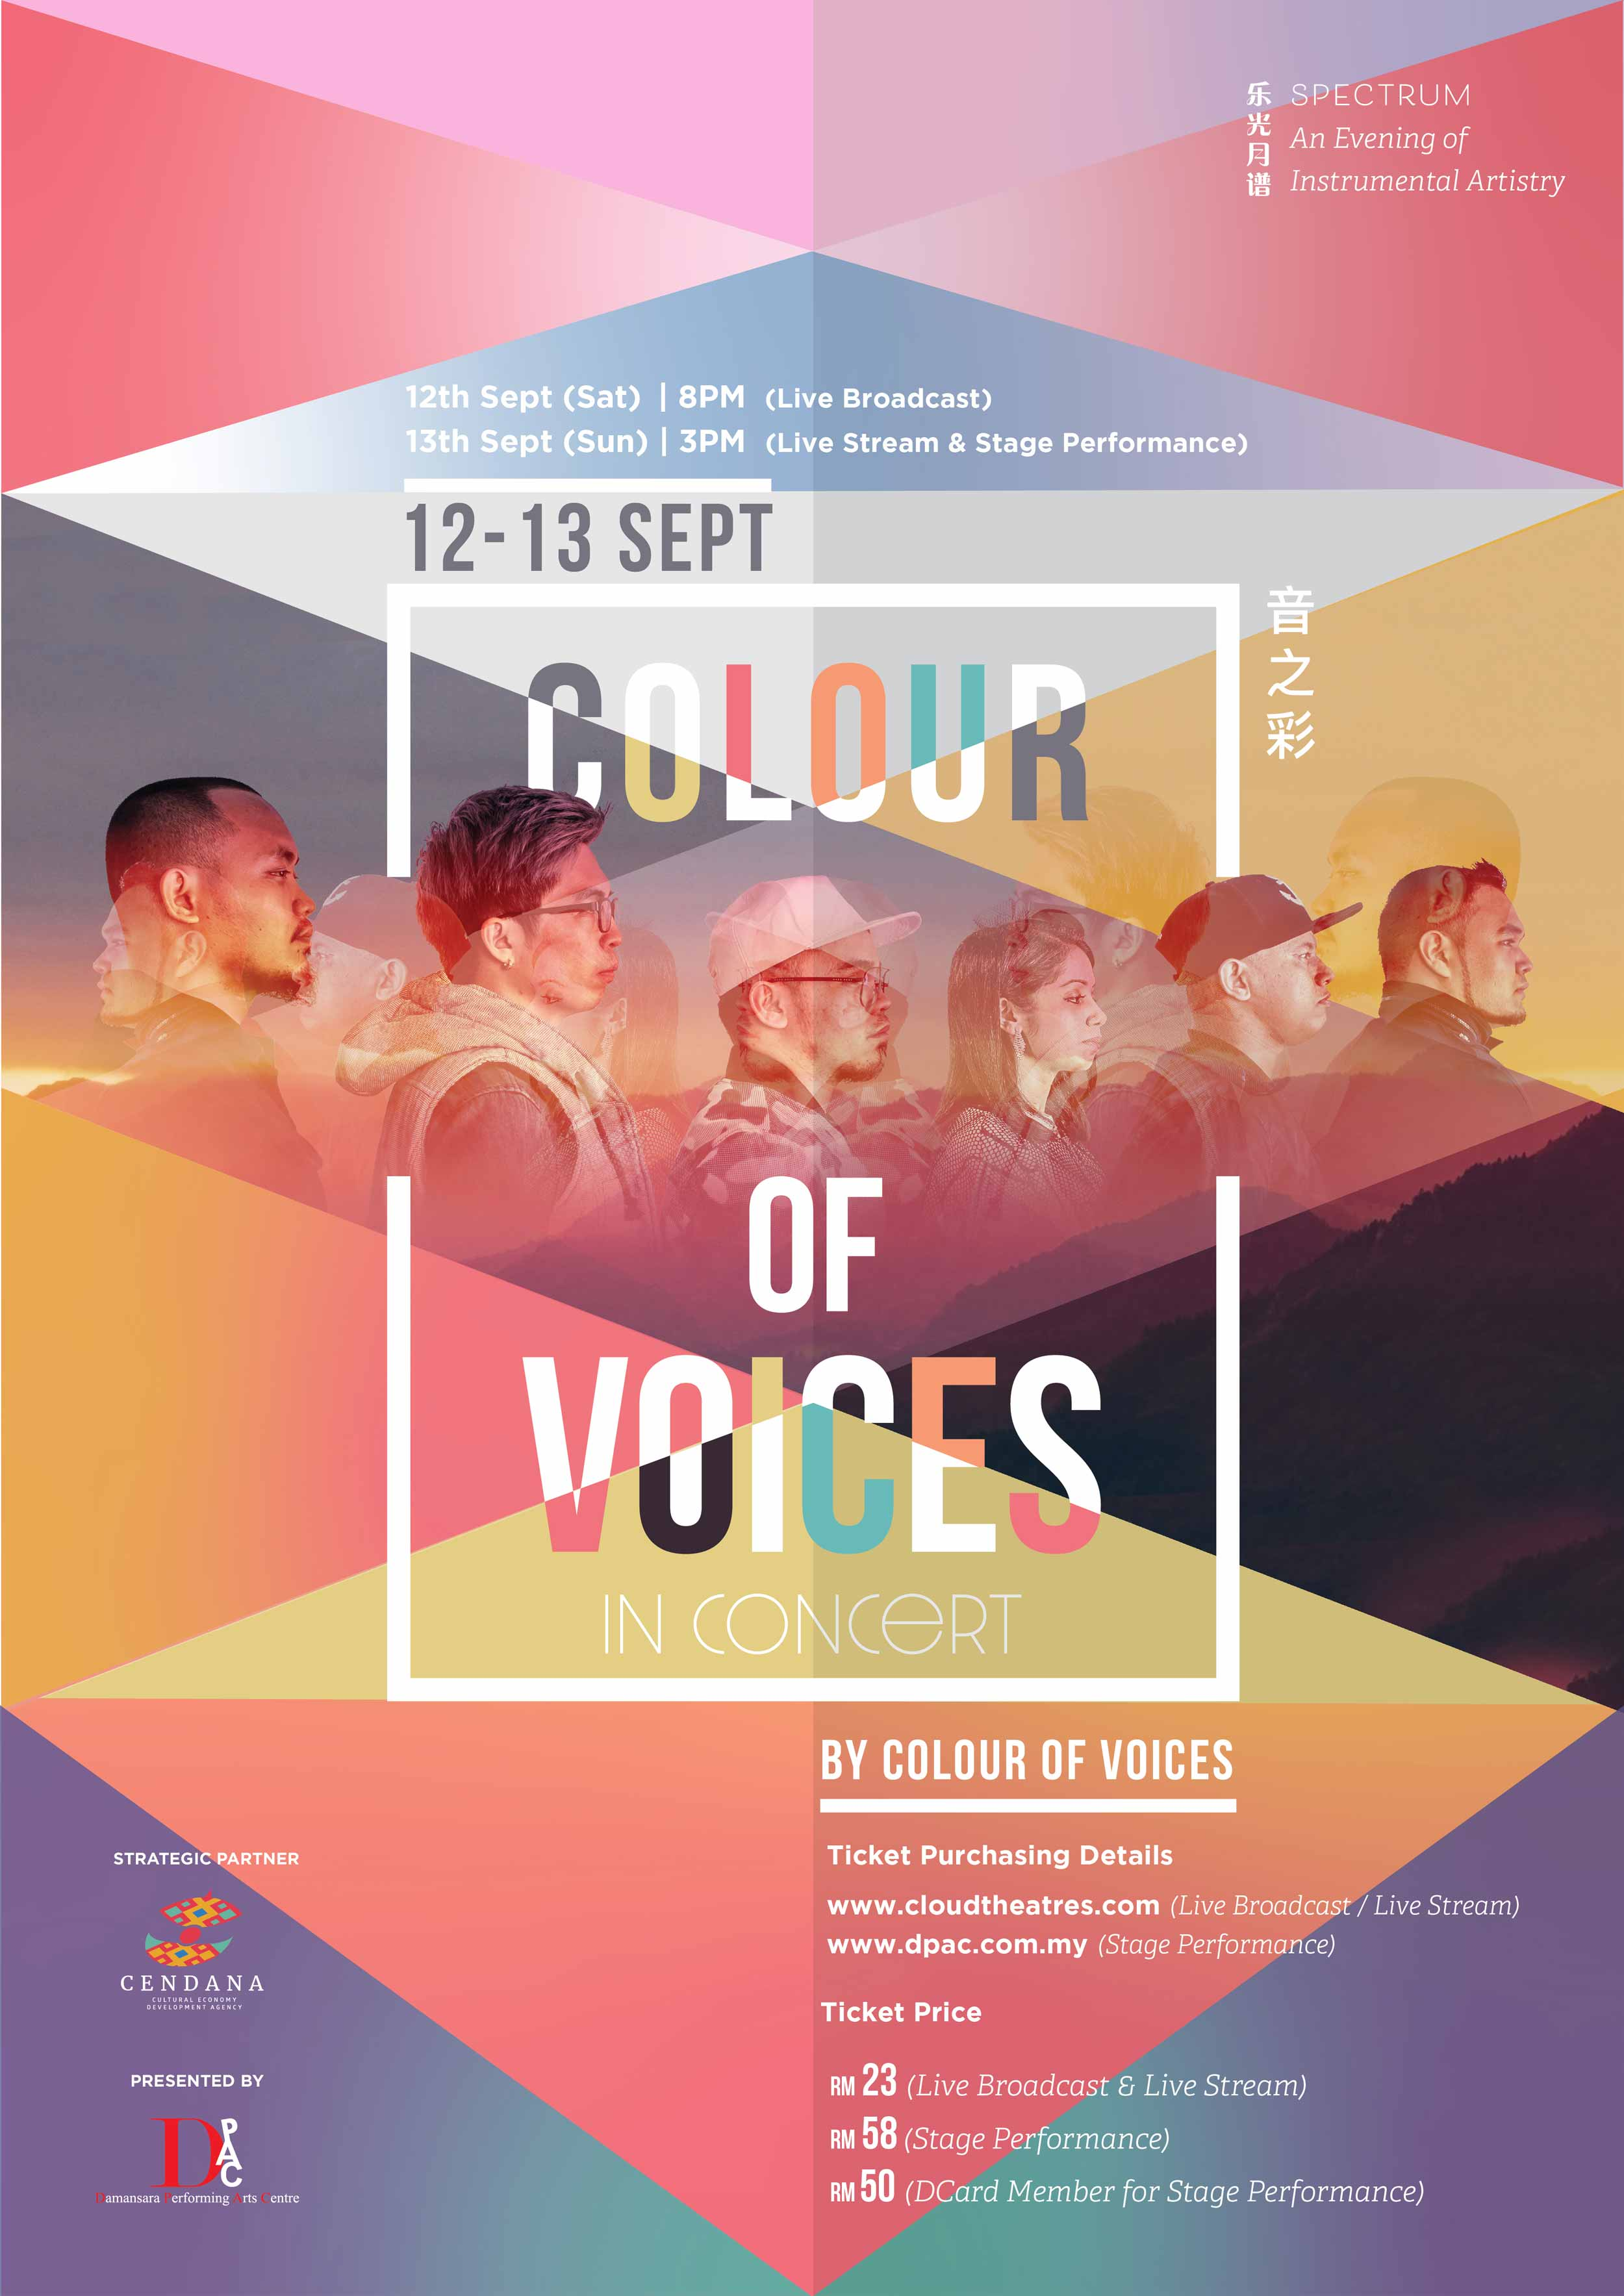 乐光·月谱 Spectrum - Colour Of Voices In Concert 音之彩